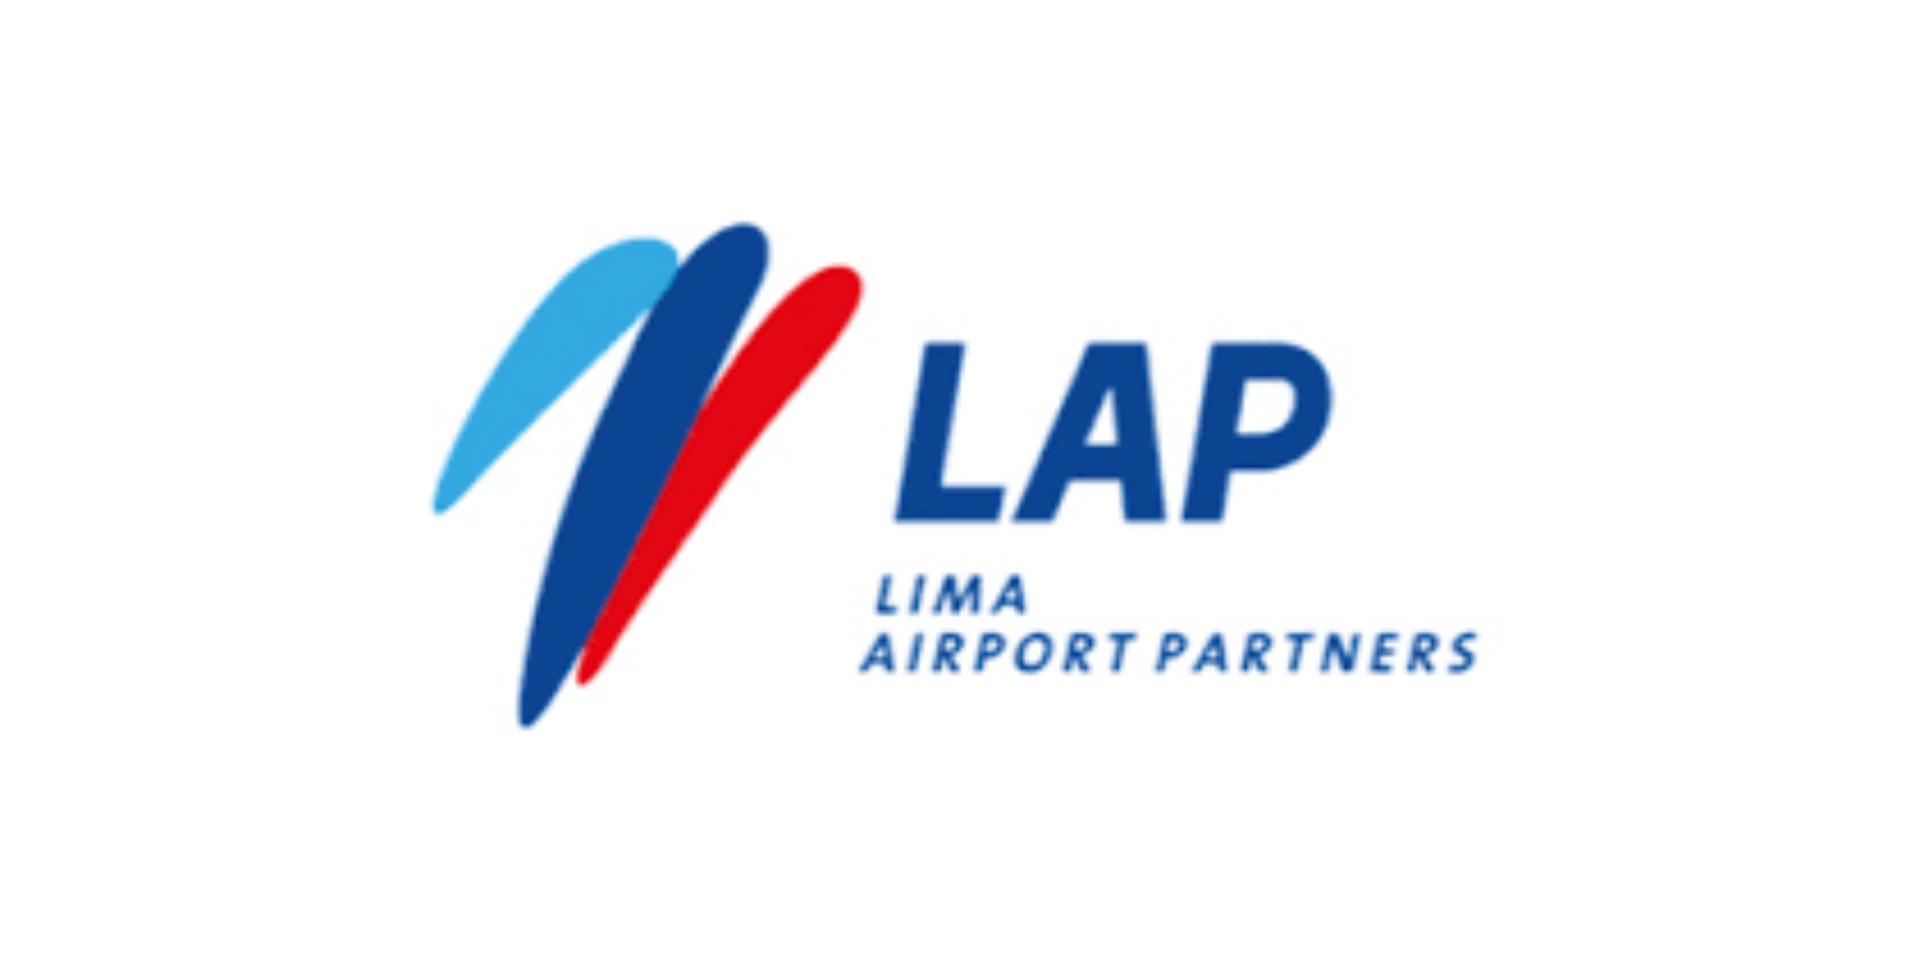 Lima Airport Partners – LAP